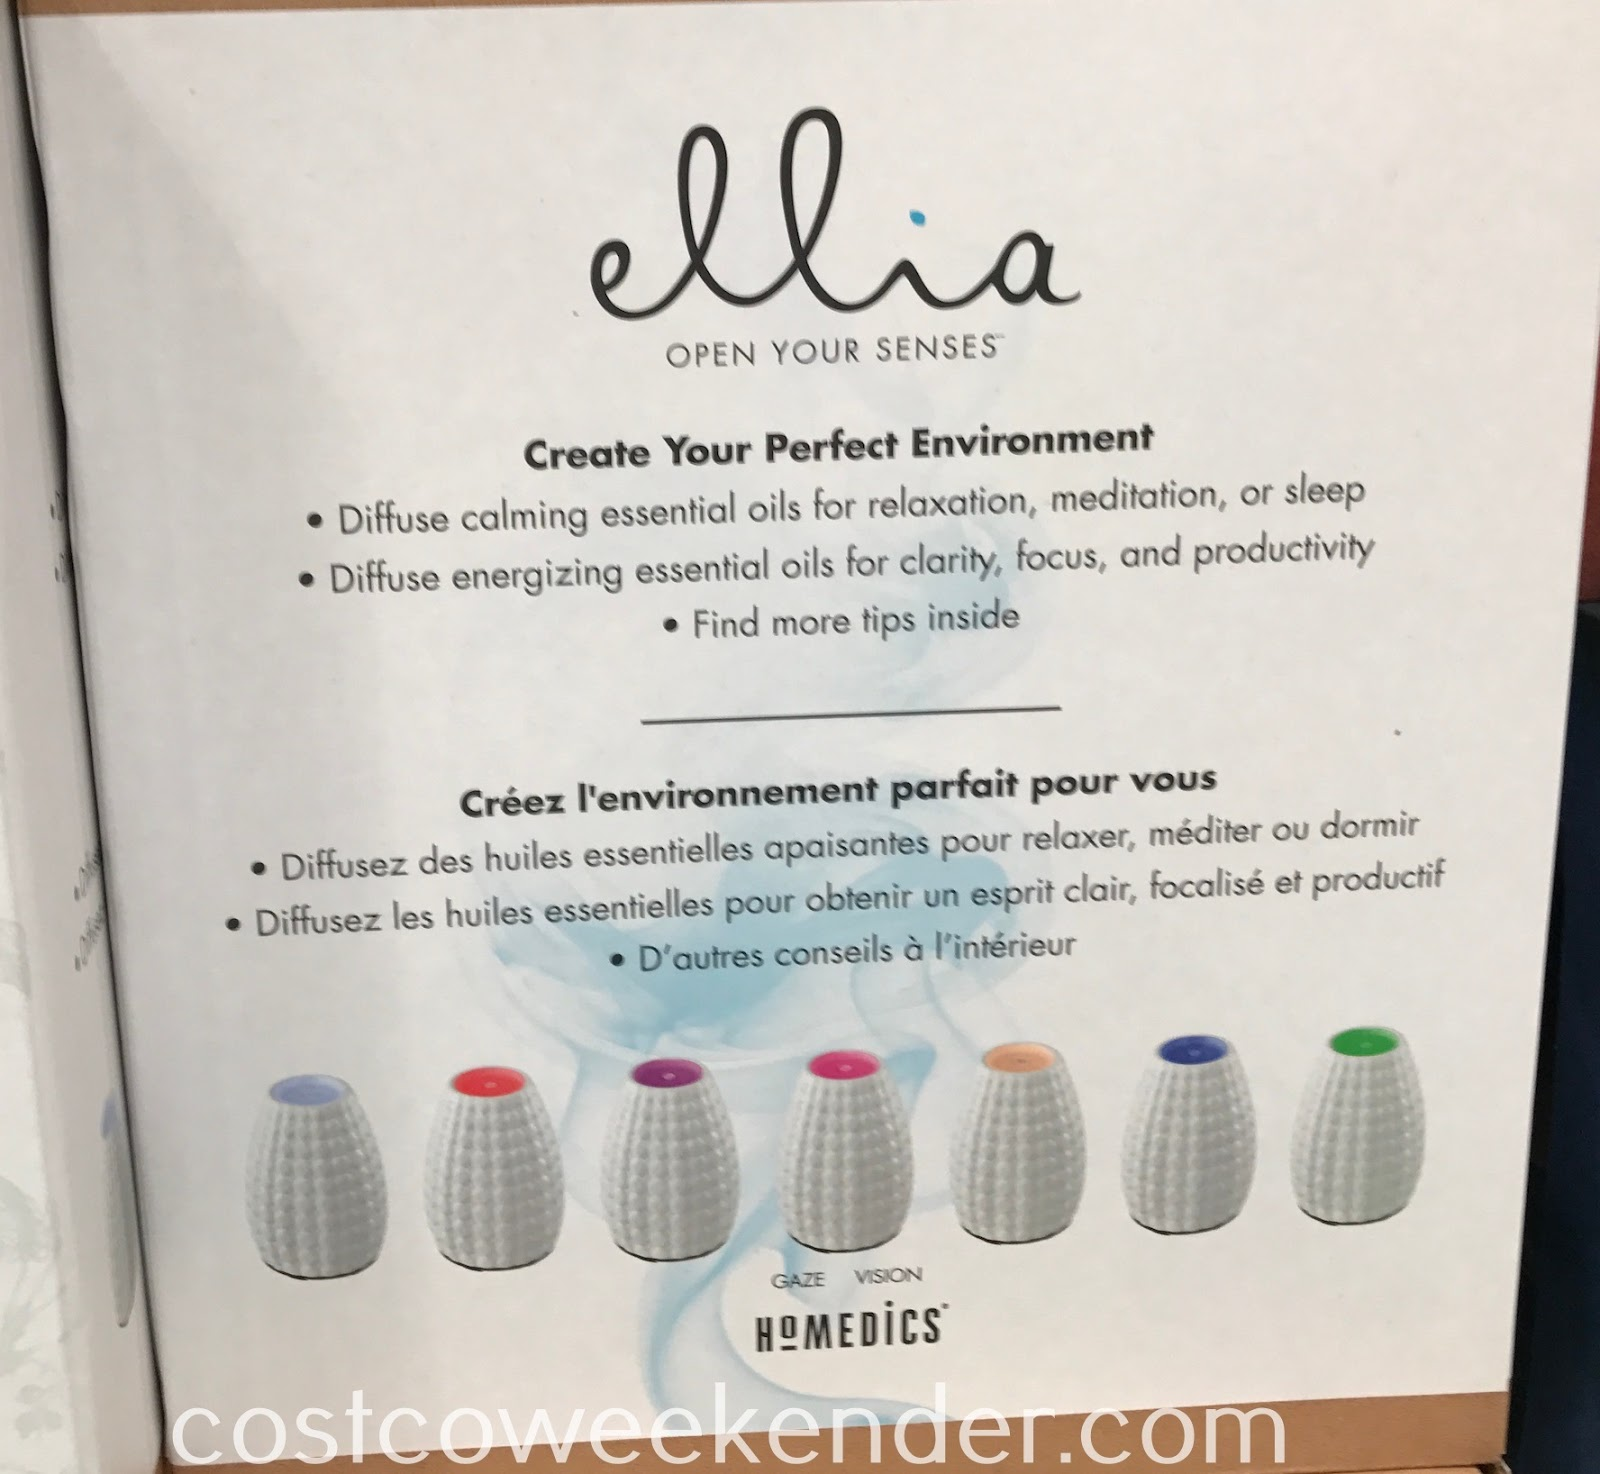 HoMedics Ellia Gaze Diffuser: great for any home